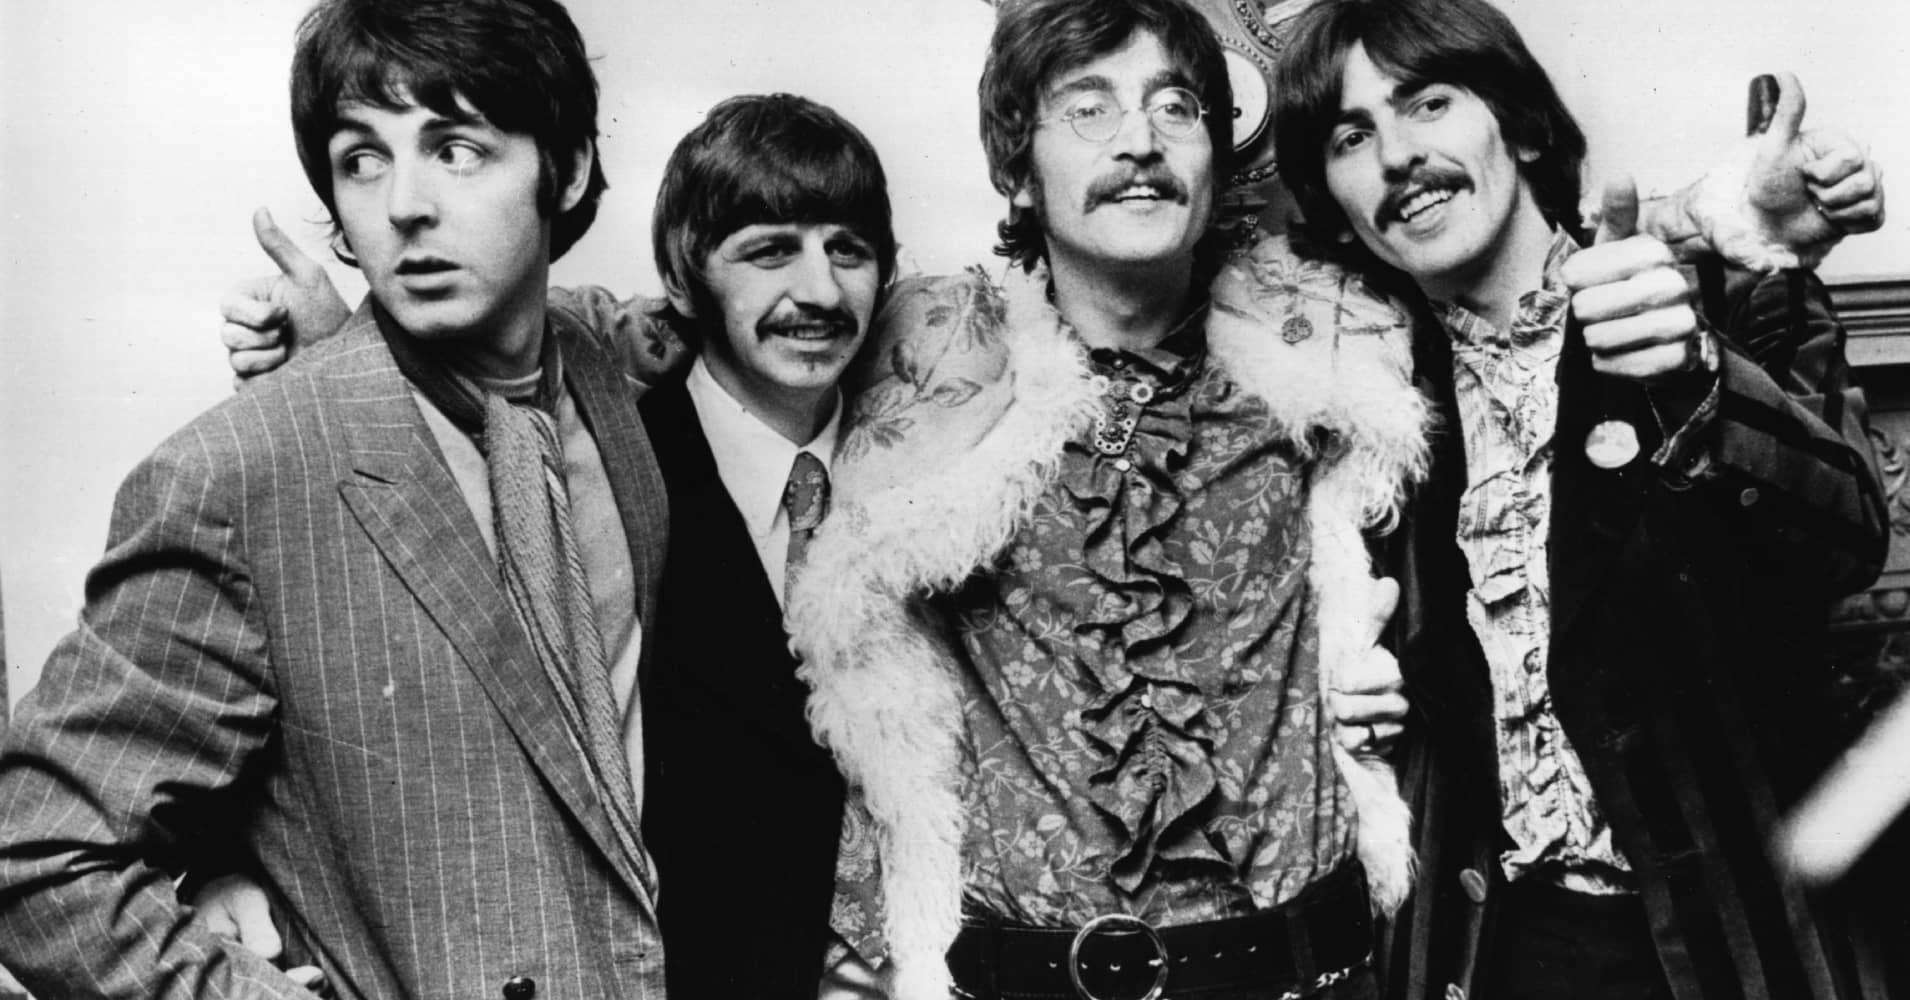 Will a future band ever surpass the Beatles?